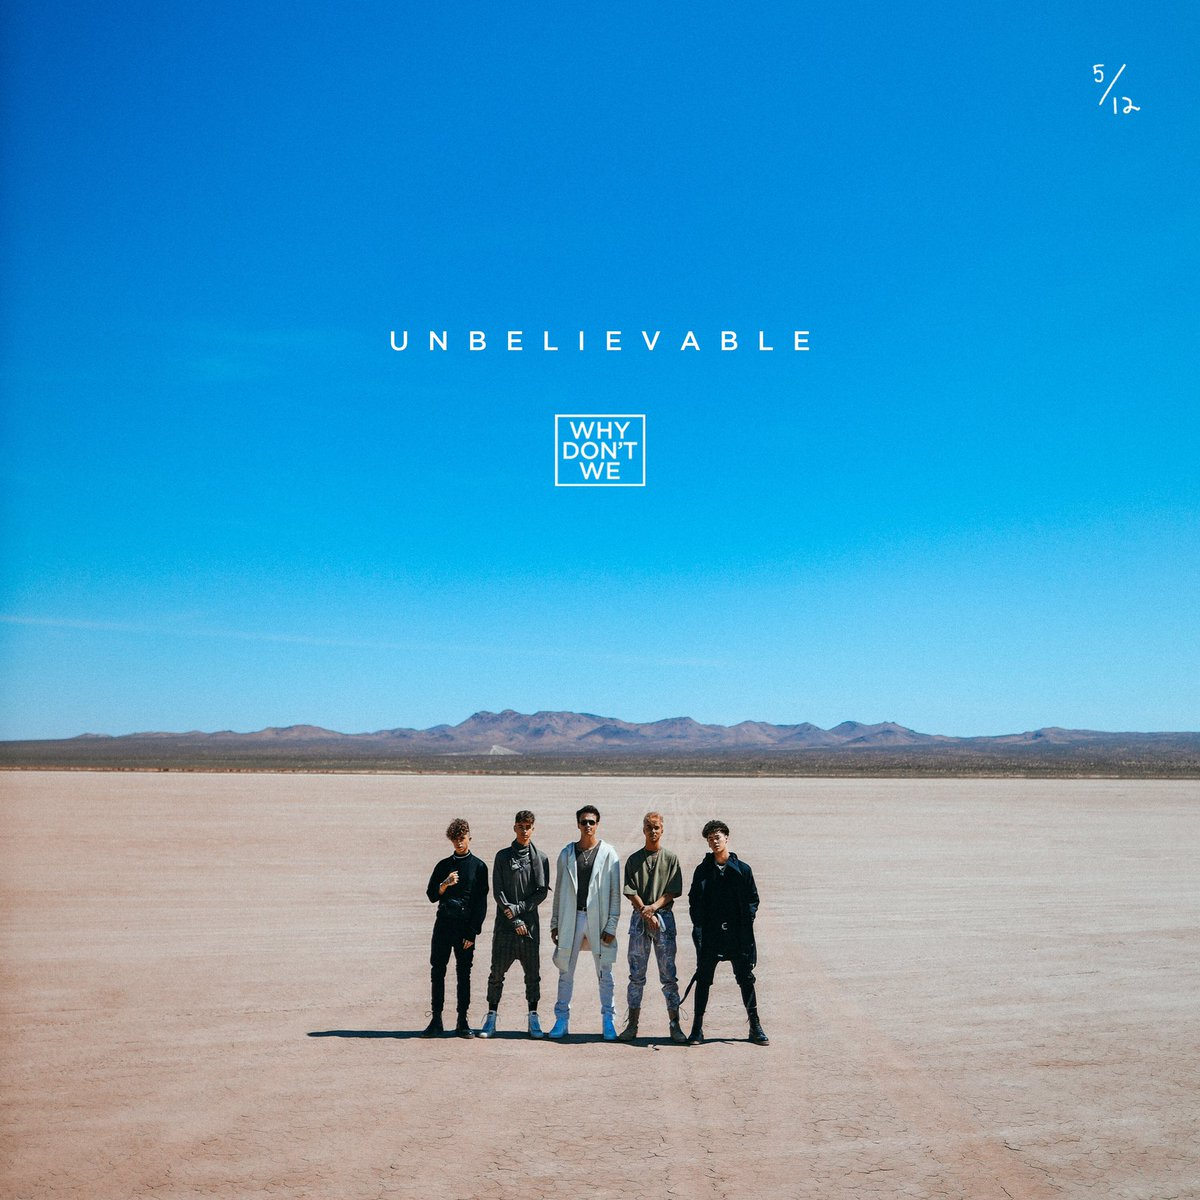 RT @bwscalifornia: LADIES RT IF YOU'RE EXCITED AF #UNBELIEVABLETONIGHT https://t.co/OCnAwHPv1G